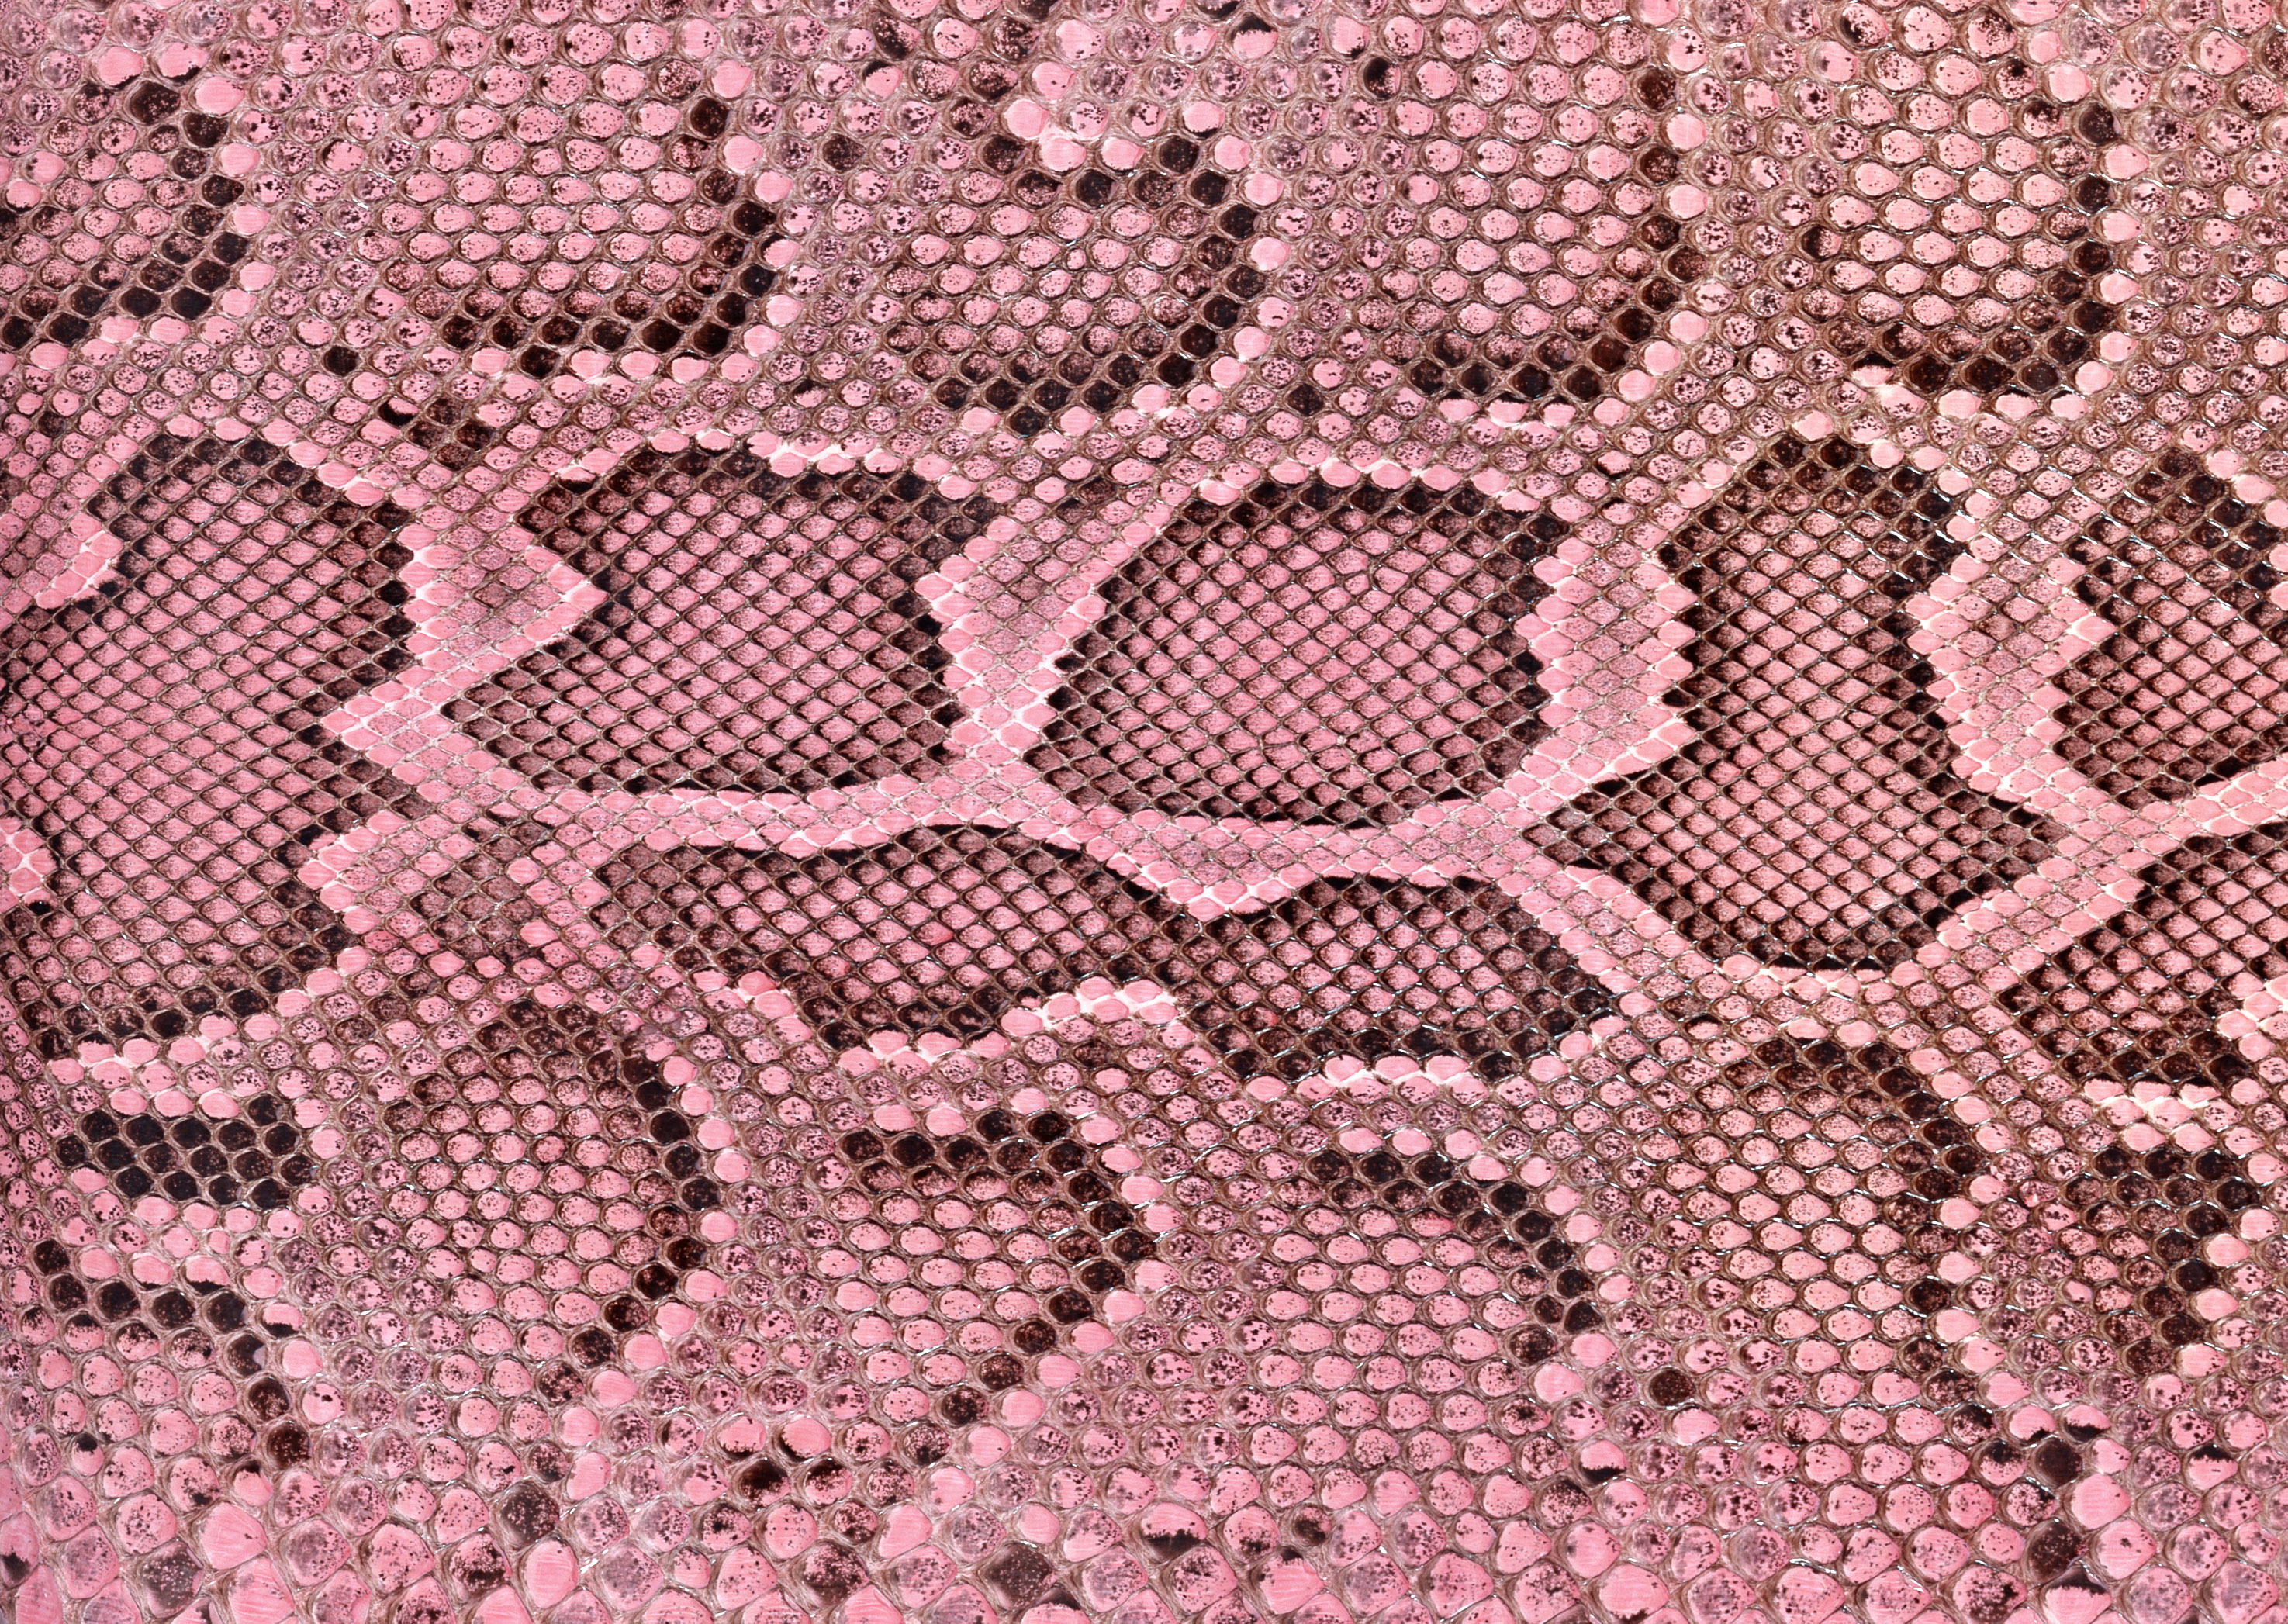 Pink snake leather texture background image download, snakes